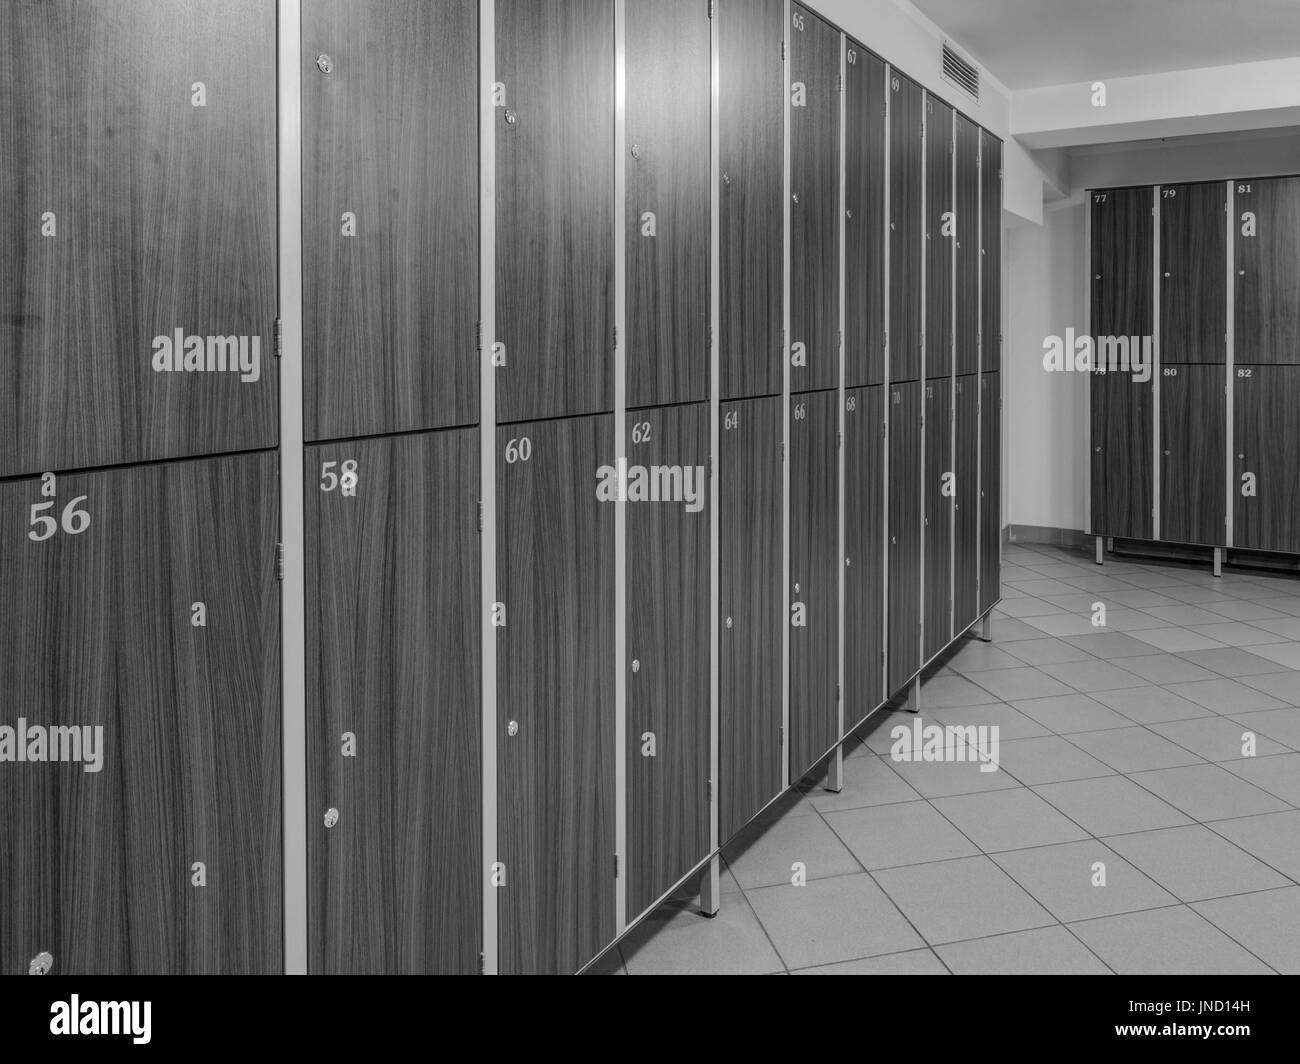 The row of wooden cabinets  in a fitness club dressing room - Stock Image